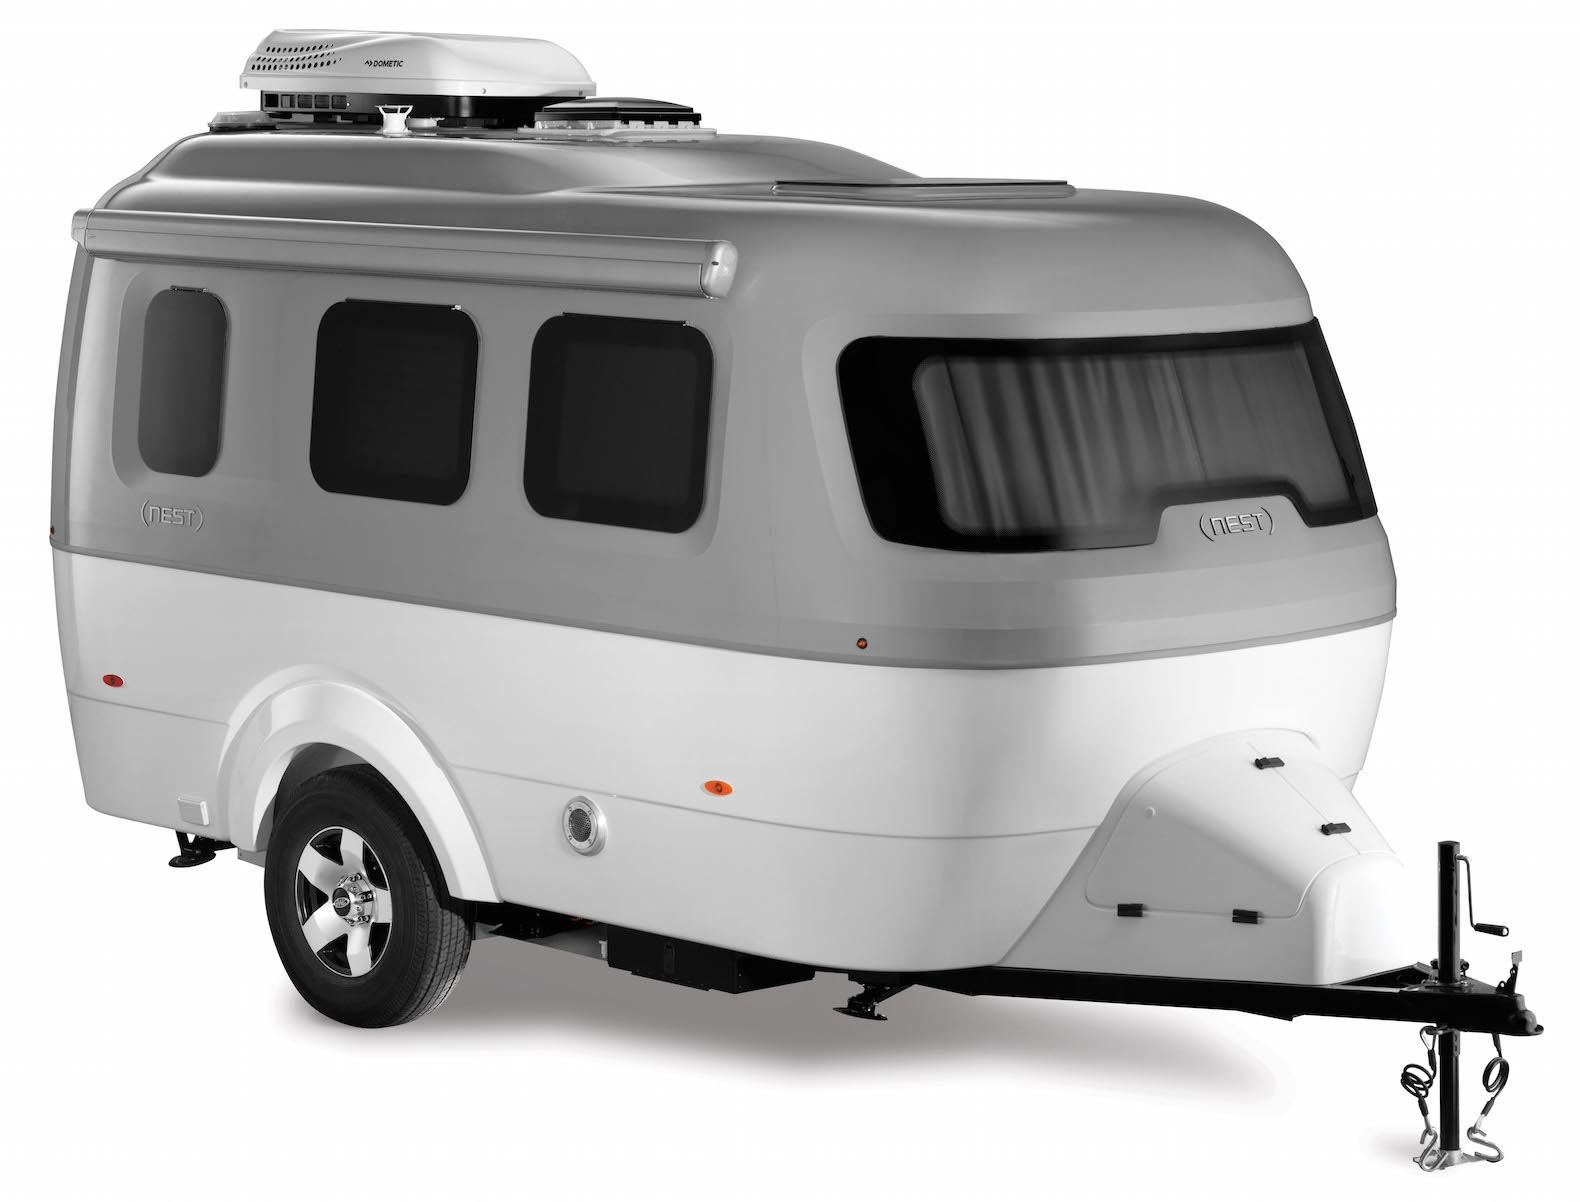 Airstream Launches Its First Ever Fiberglass Camper For Under $50K